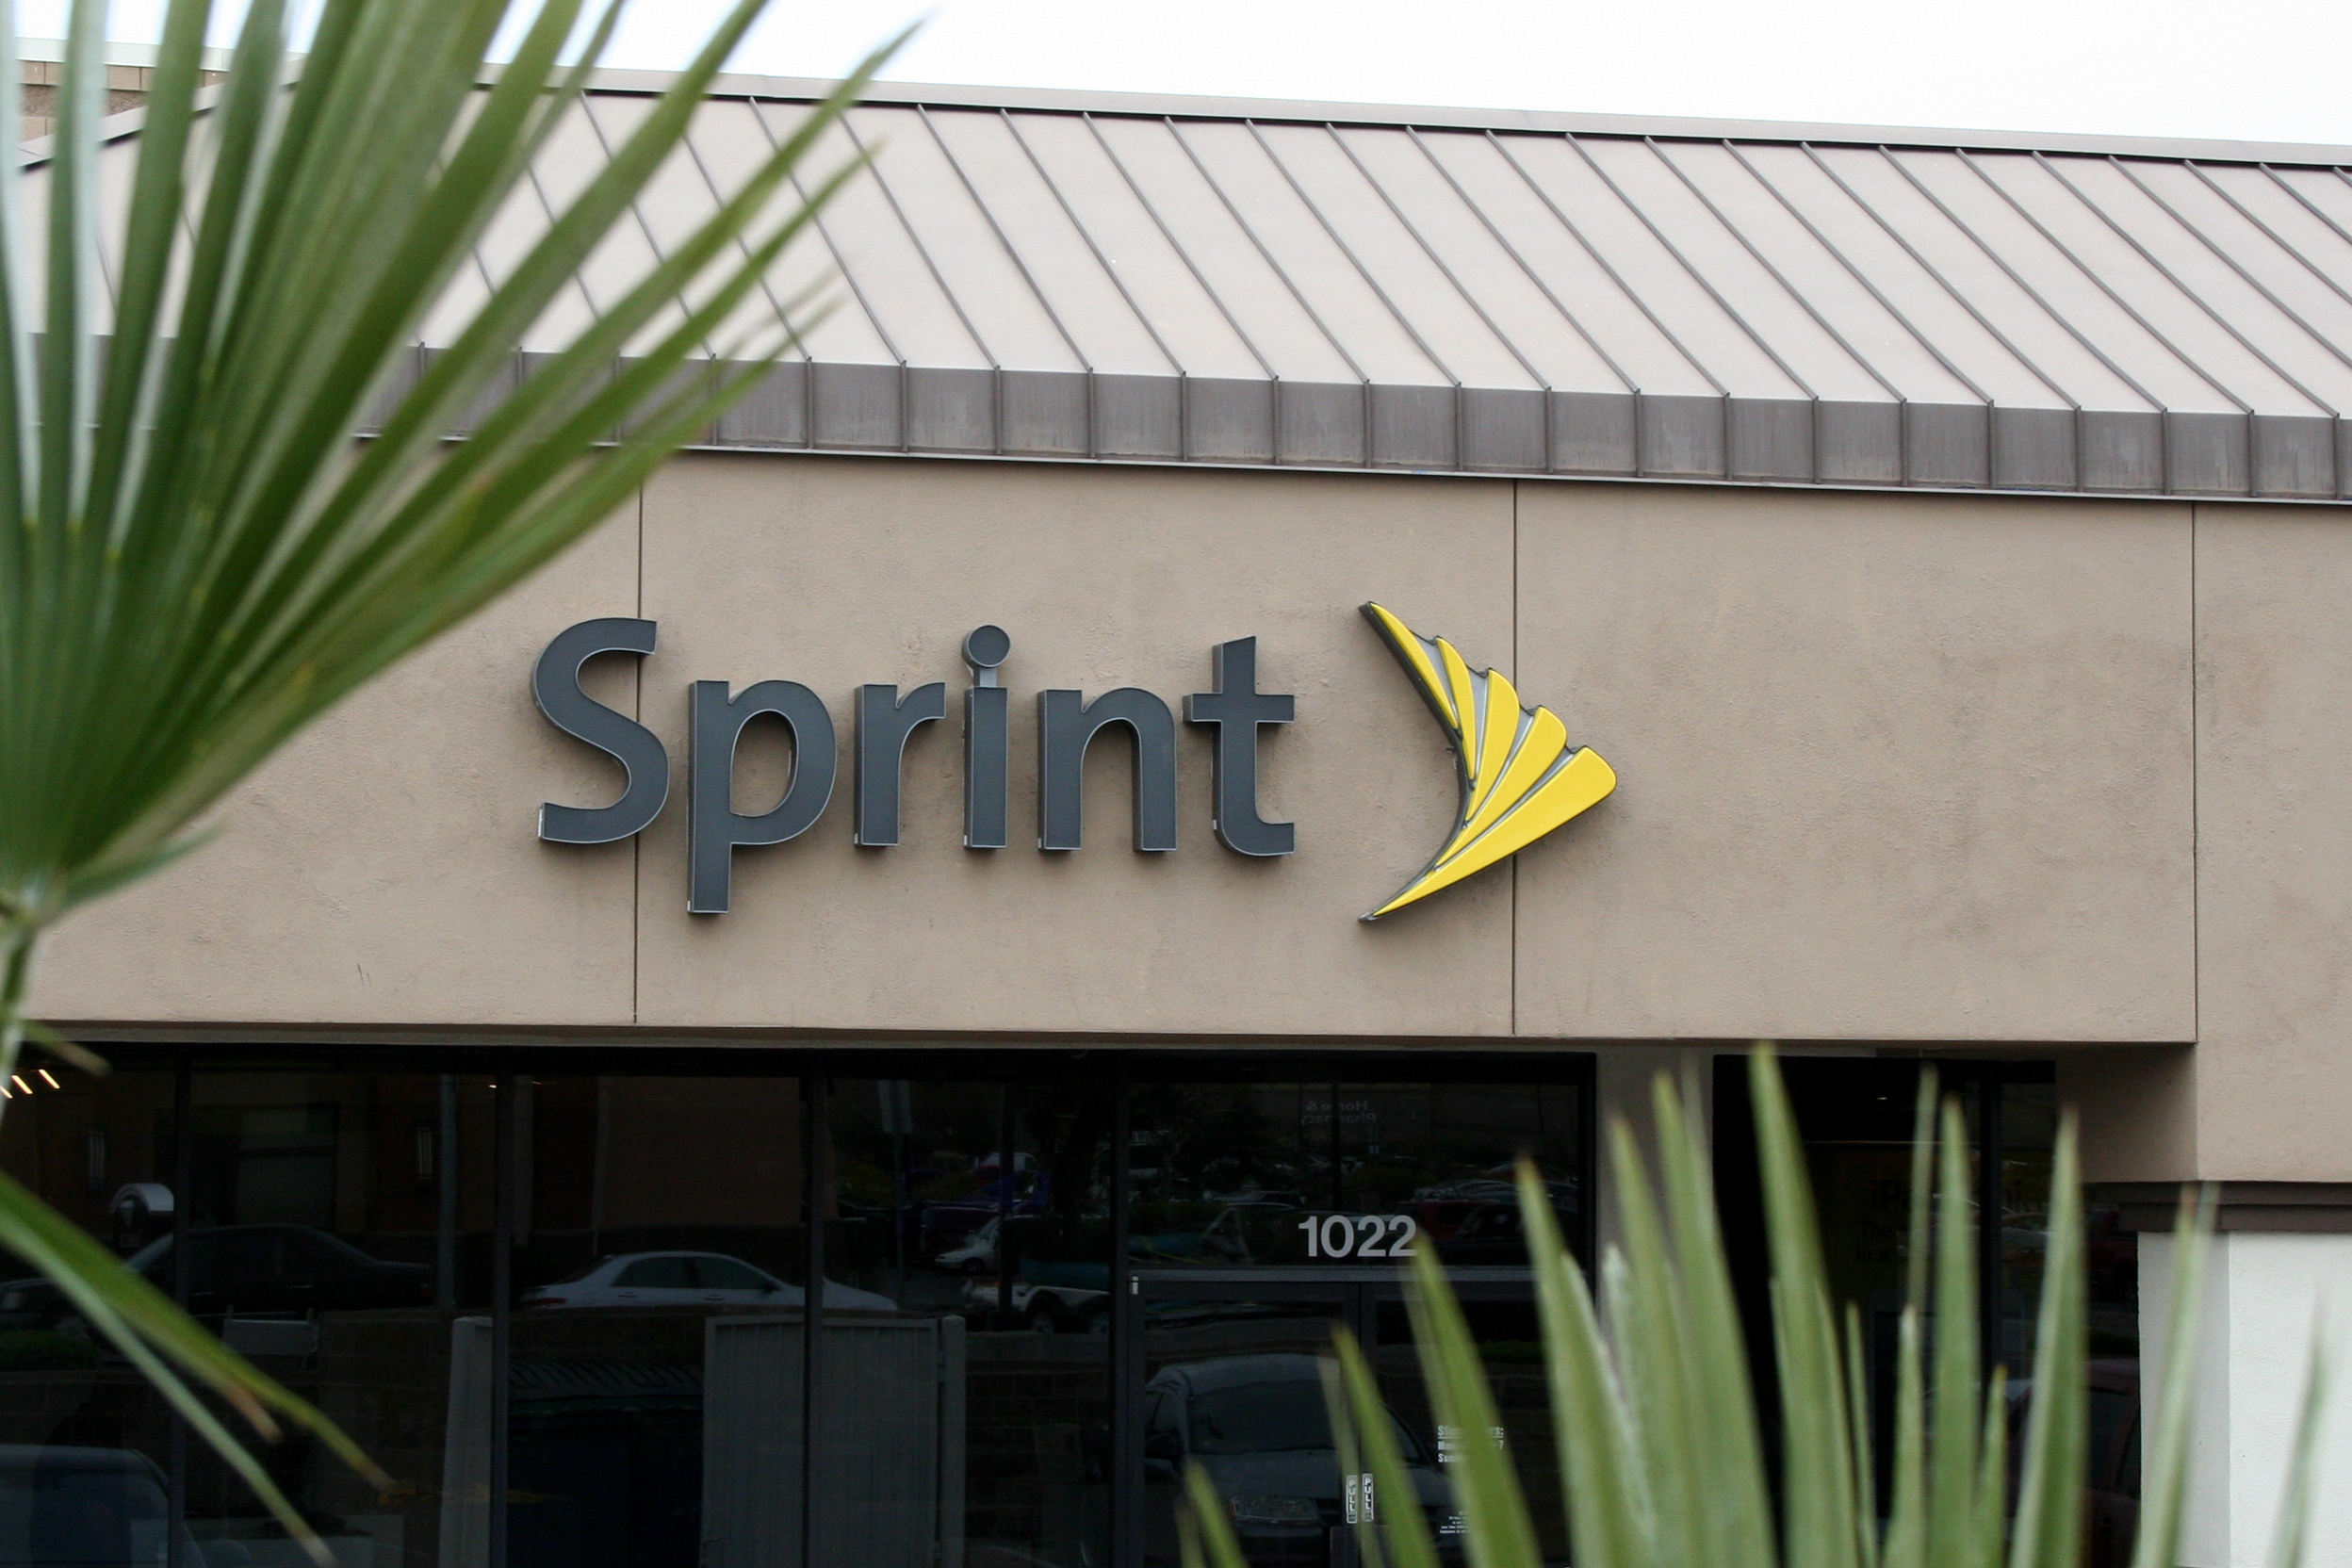 Sprint (NYSE:S) continues to expand its presence and investment in Southern California with plans to add more than 550 new jobs and 78 new retail locations throughout the southland by the end of 2017. (Photo: Business Wire)